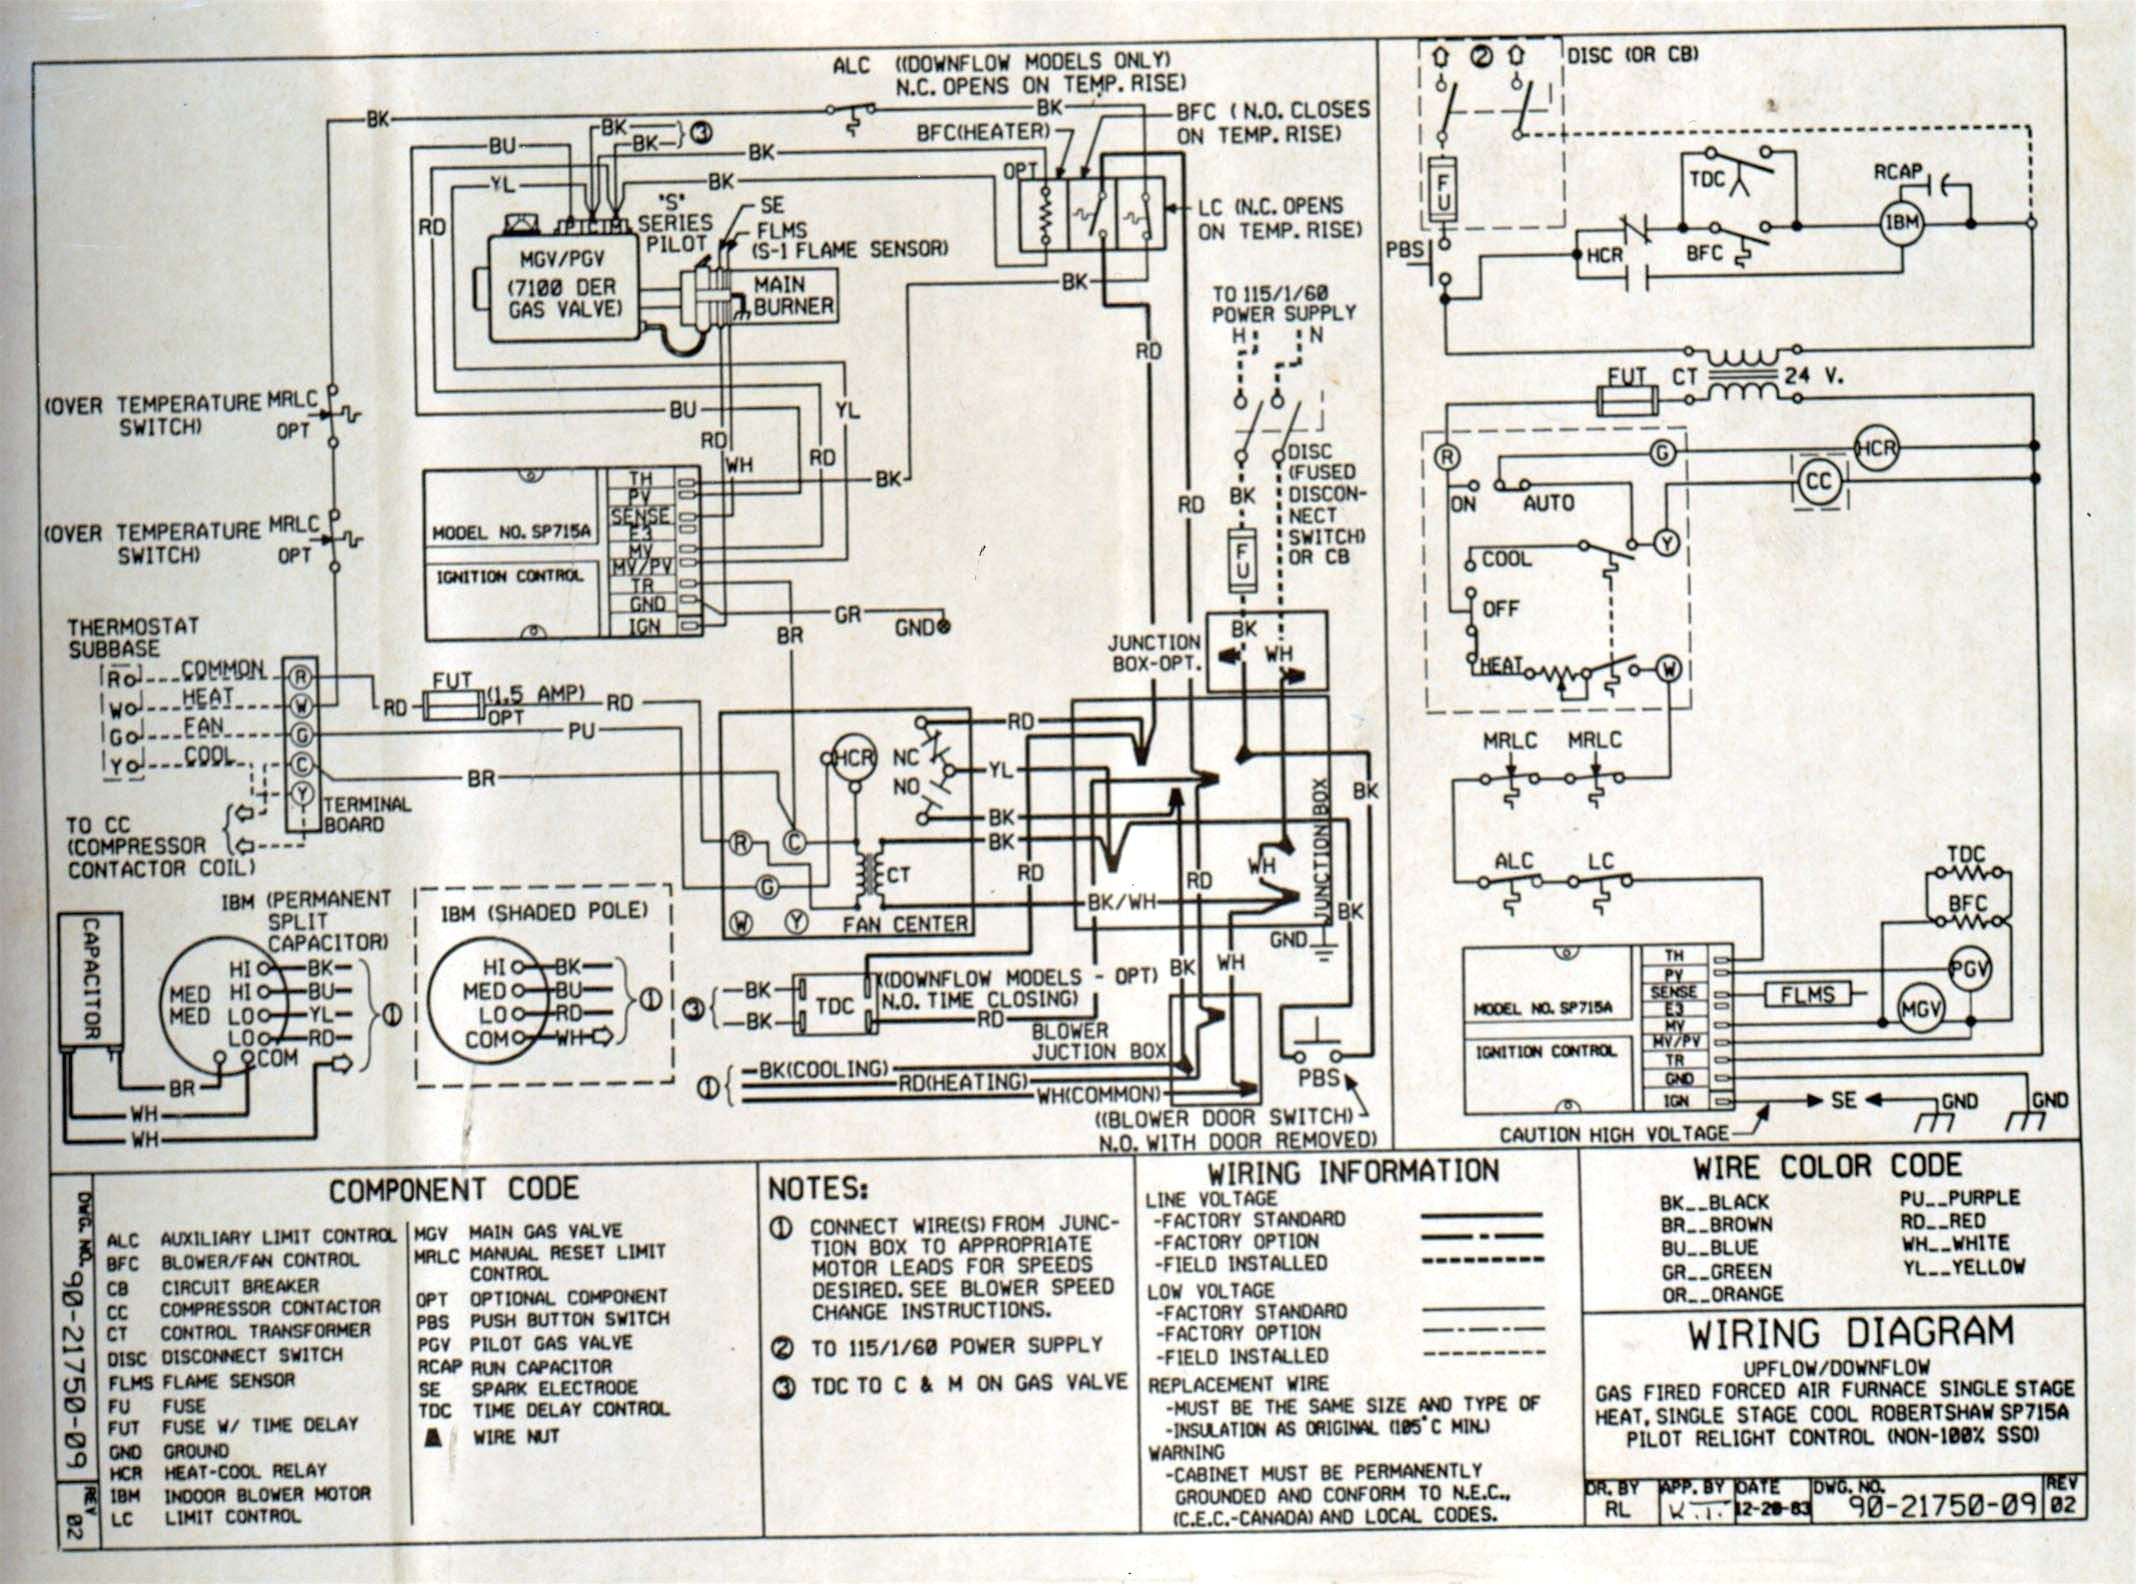 trane chiller wiring diagram functional block of 8086 microprocessor thermostat tutorial free